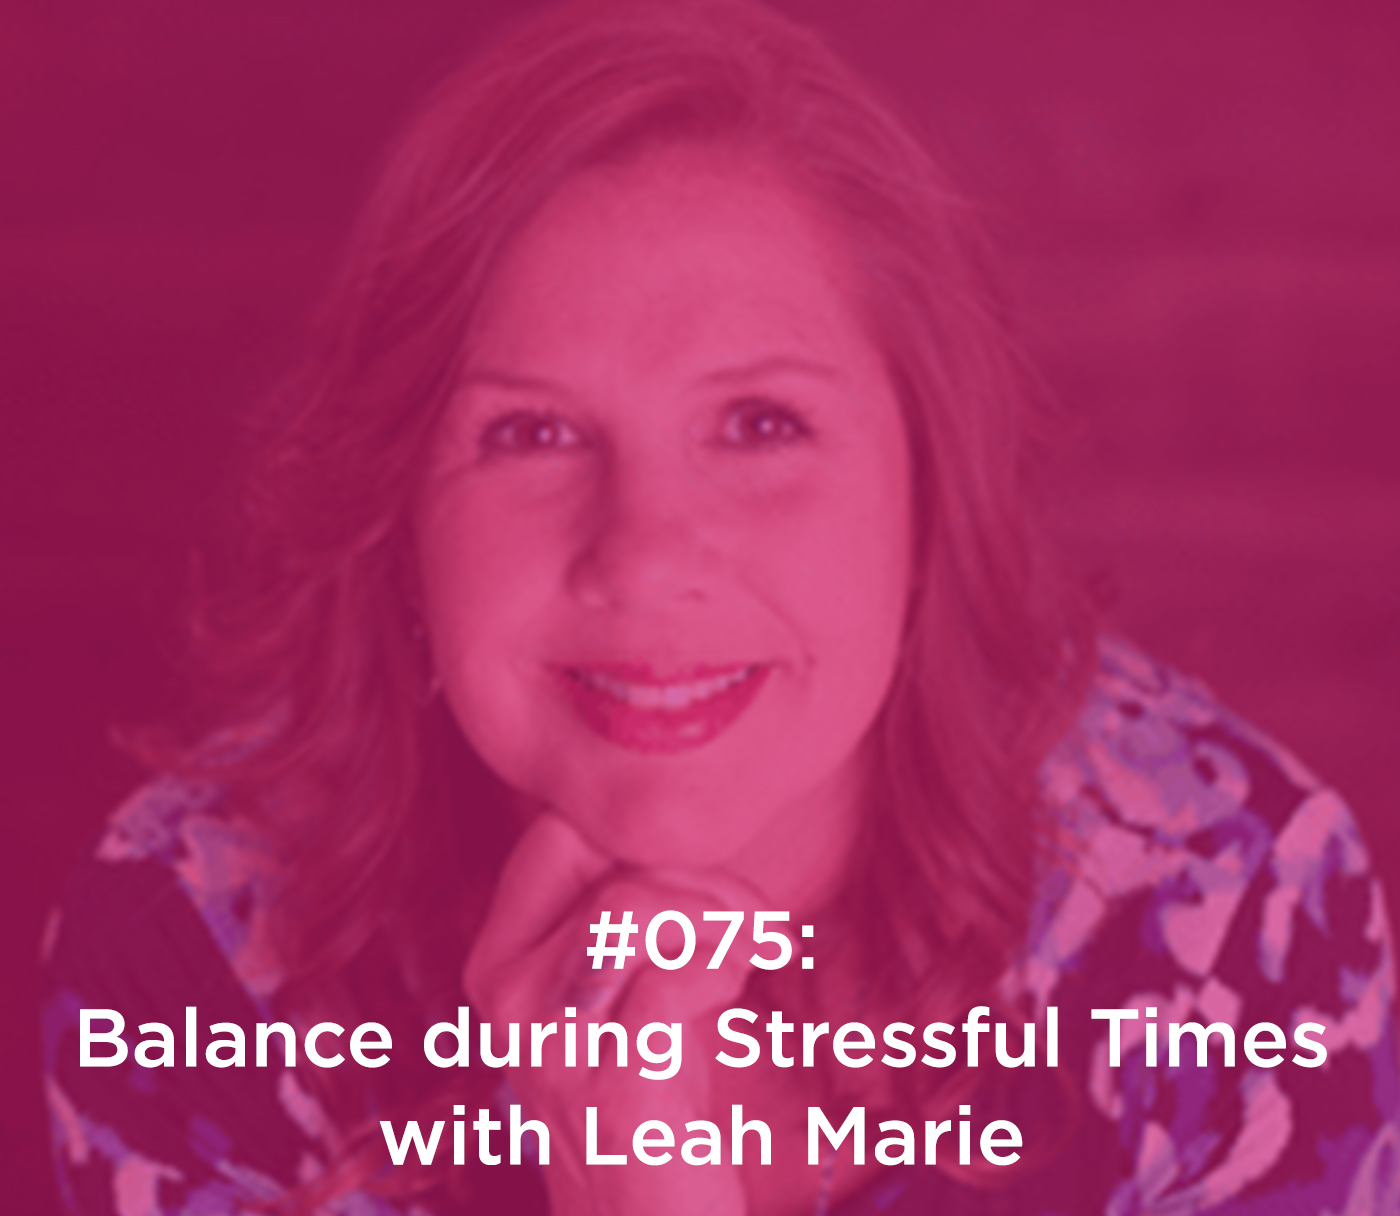 Balance during Stressful Times with Leah Marie